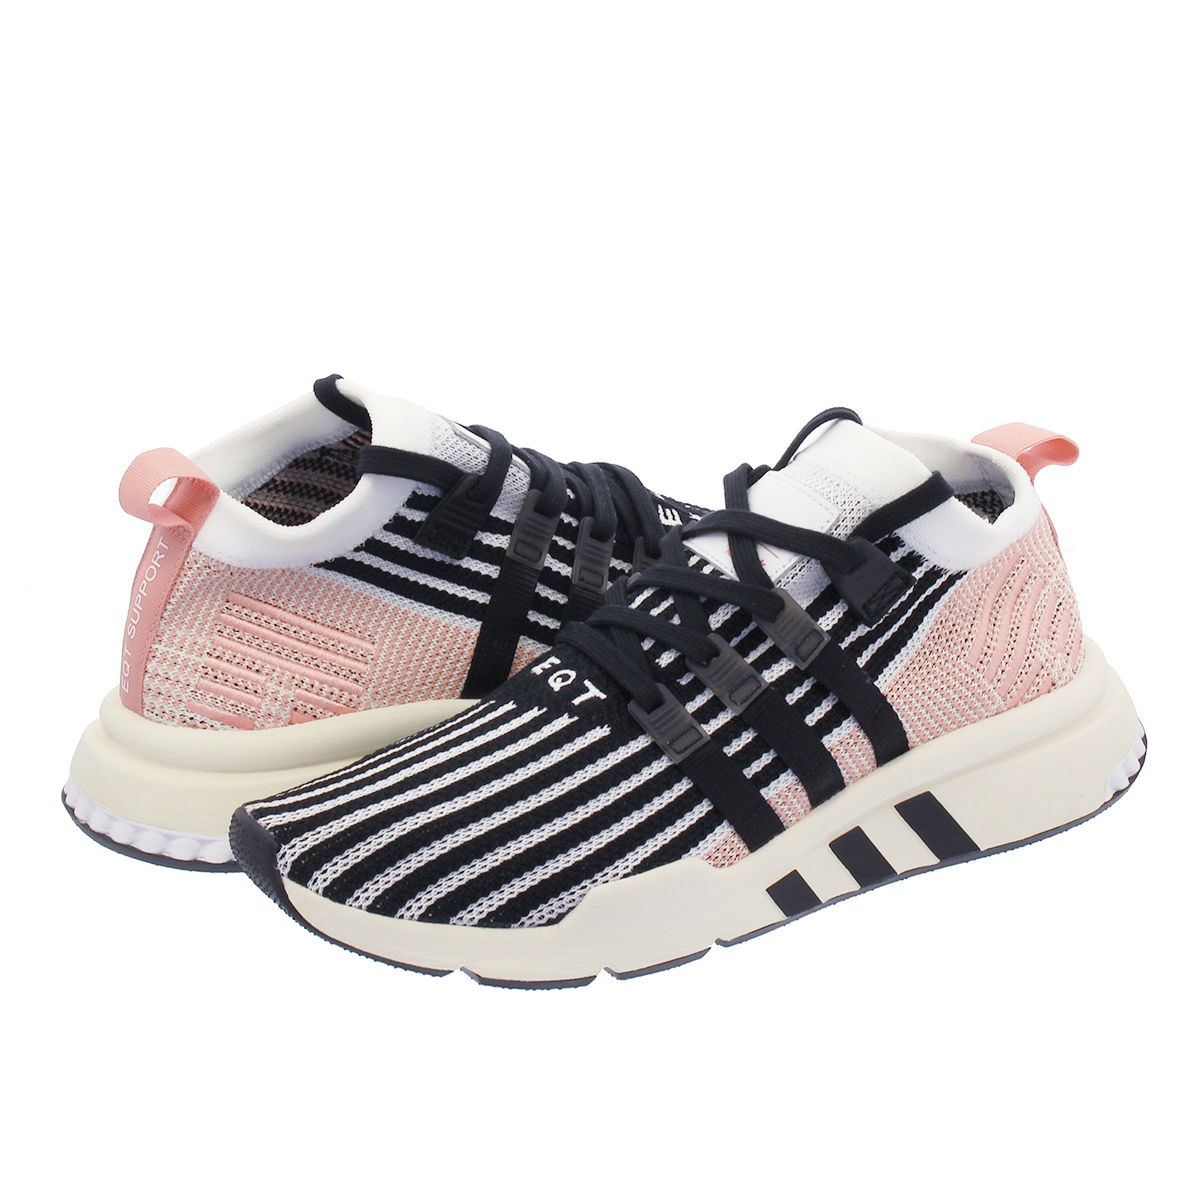 buy online 9d612 5fde9 adidas EQT SUPPORT MID ADV PK Adidas EQT support mid ADV PK RUNNING  WHITE/CORE BLACK/TRACE PINK aq104